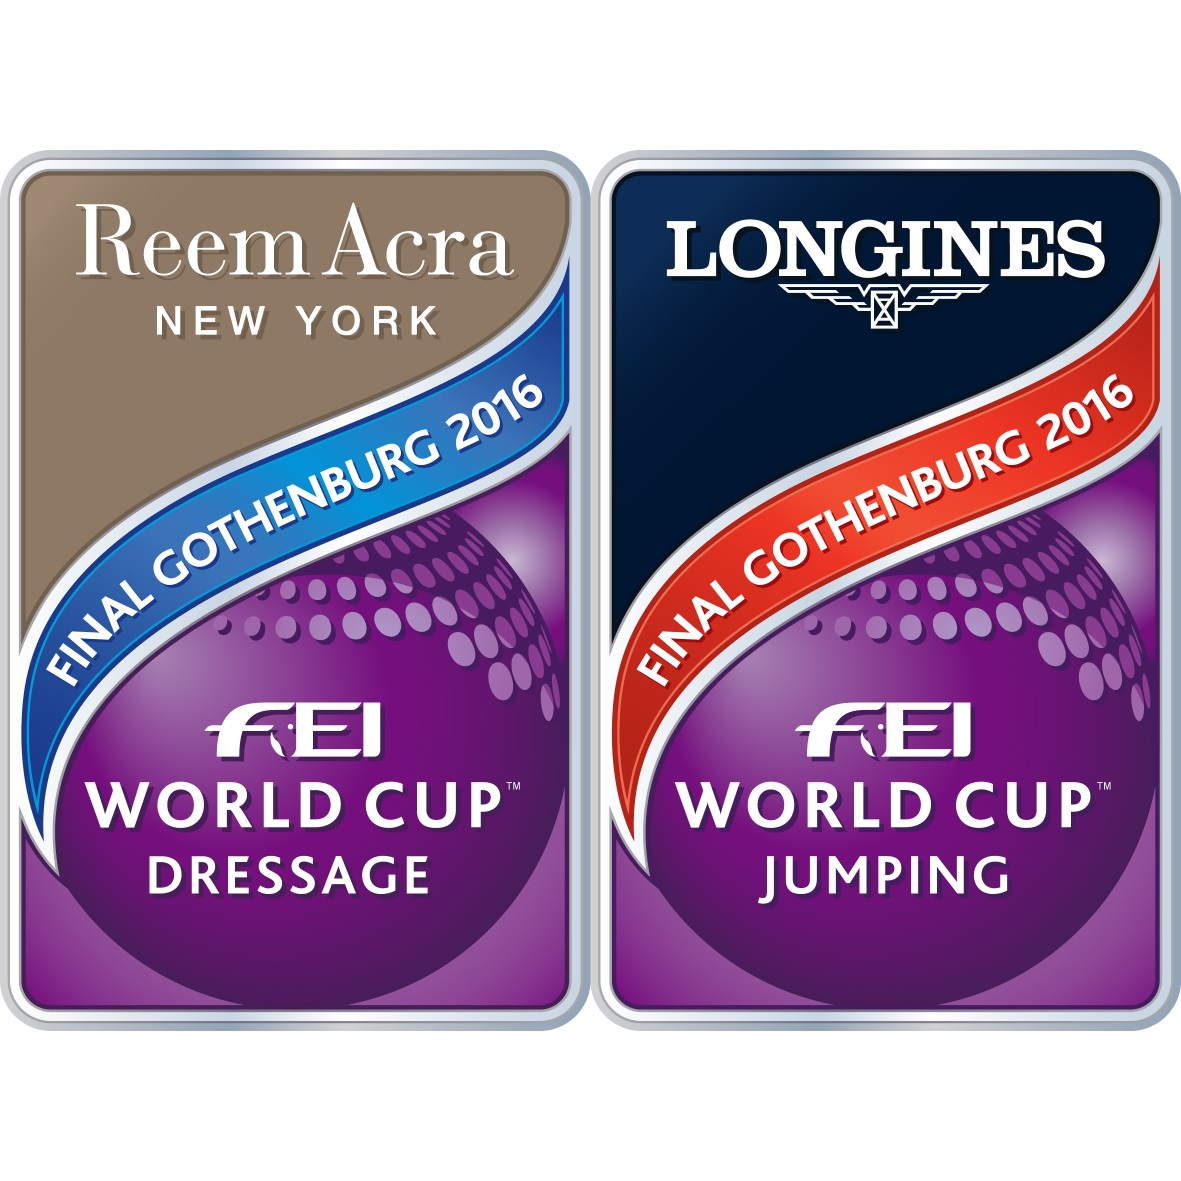 2016 Equestrian World Cup - Final